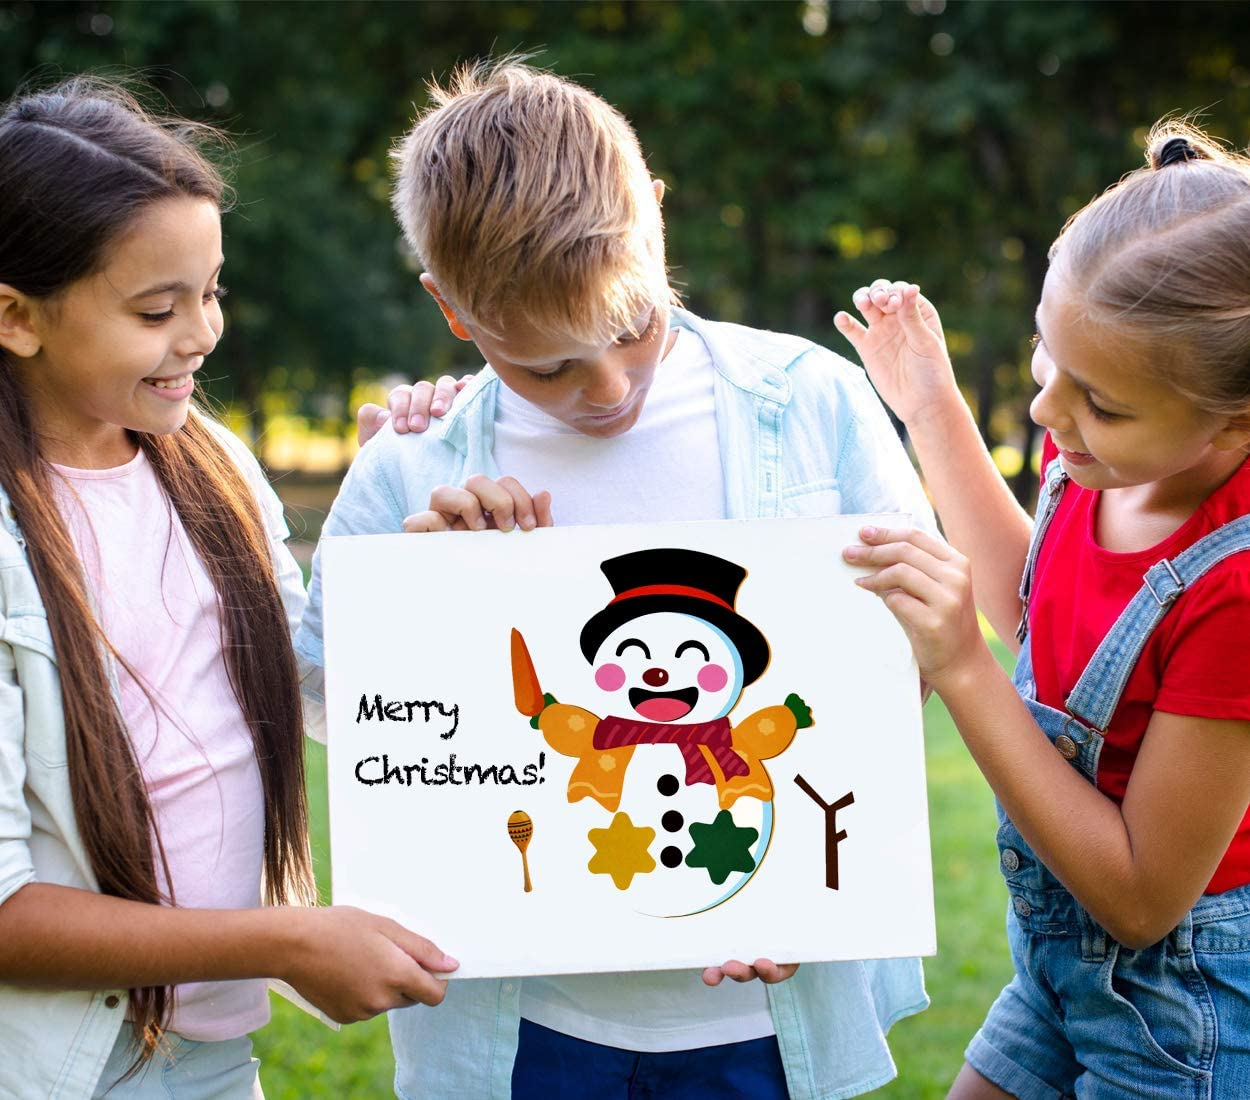 XJF Christmas Party Games for Kids,24pcs Make Your Own Snowman Stickers,Quarantine Xmas Party Supplies Favors for Classroom Children Activities